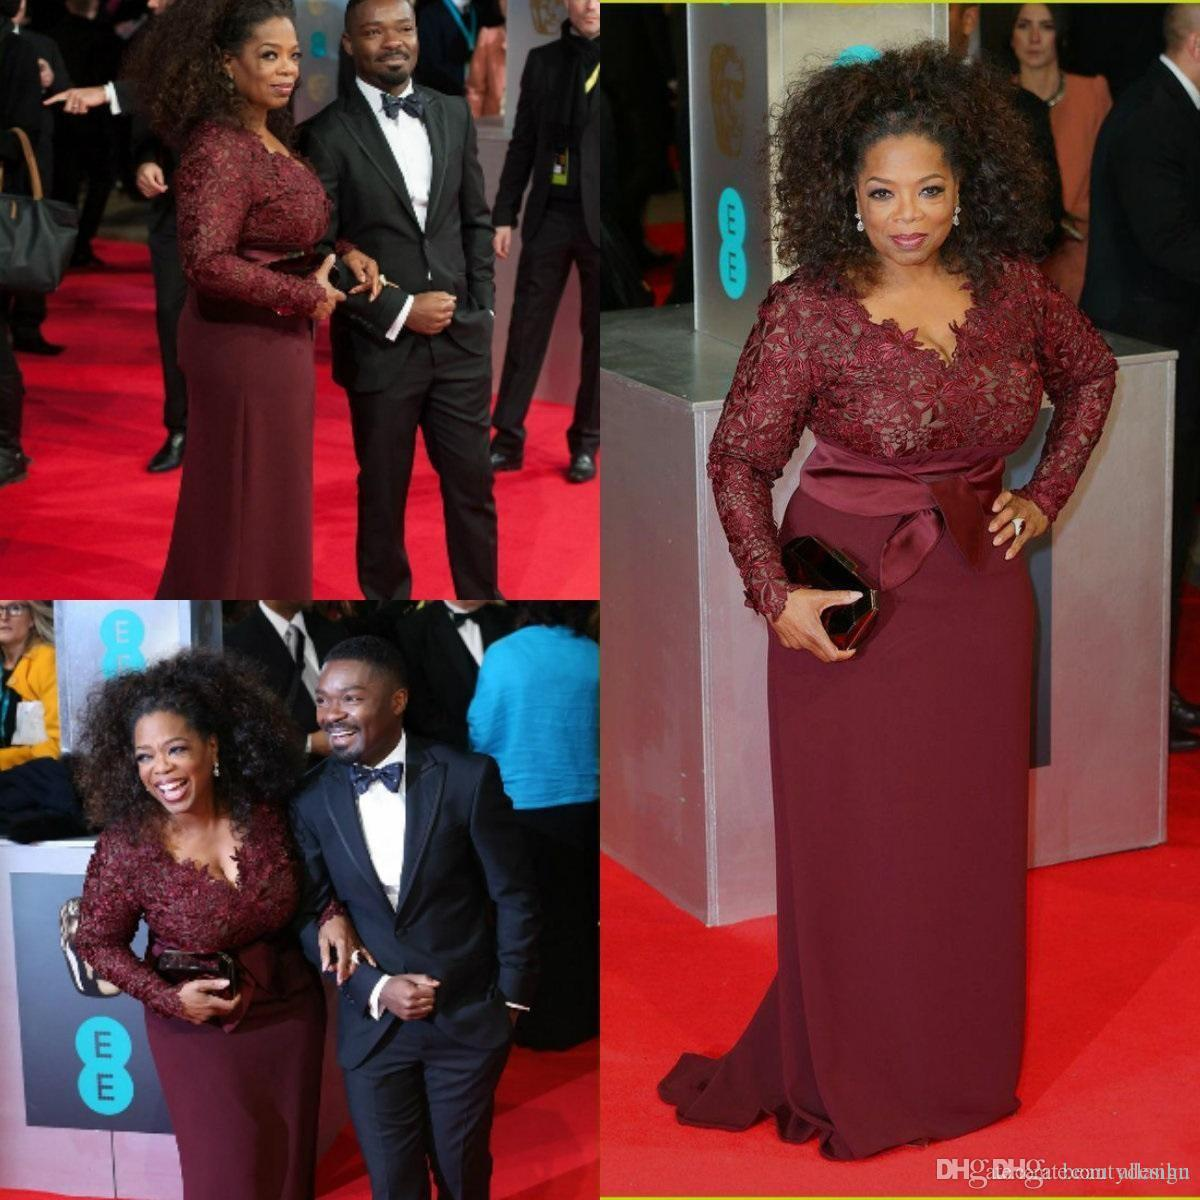 Oprah Winfrey Burgundy Mother of the Bride Dresses Long Sleeves Sexy V-Neck Sheer Lace Sheath Plus Size Celebrity Red Carpet Gowns